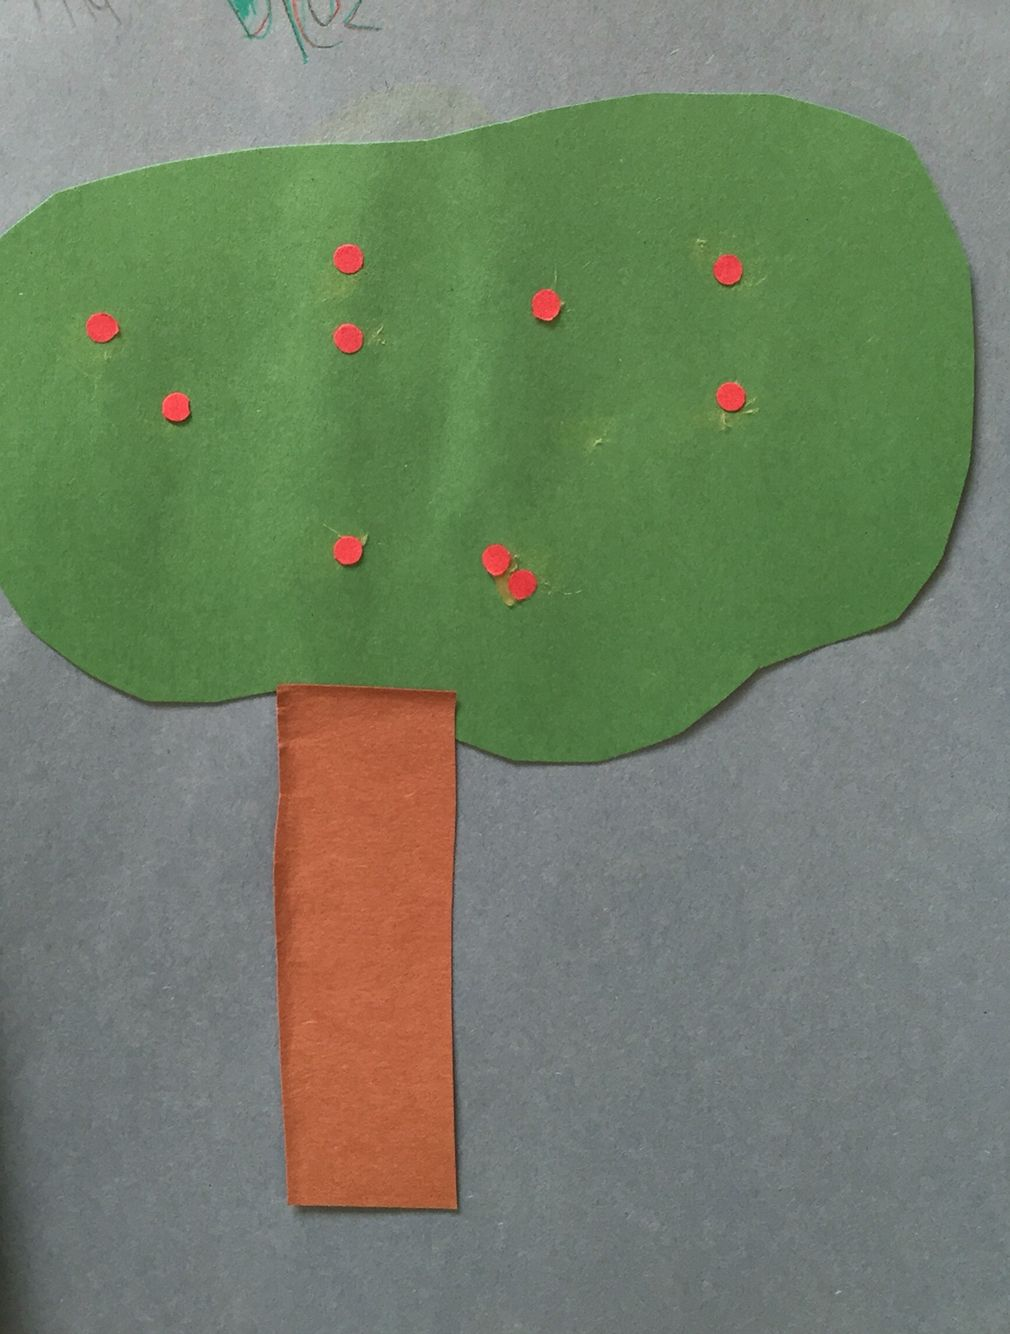 The Pre-K Spanish class practiced counting to ten in Spanish by adding apples to their paper trees. #spanish #diez #apples #brookeside #montessori